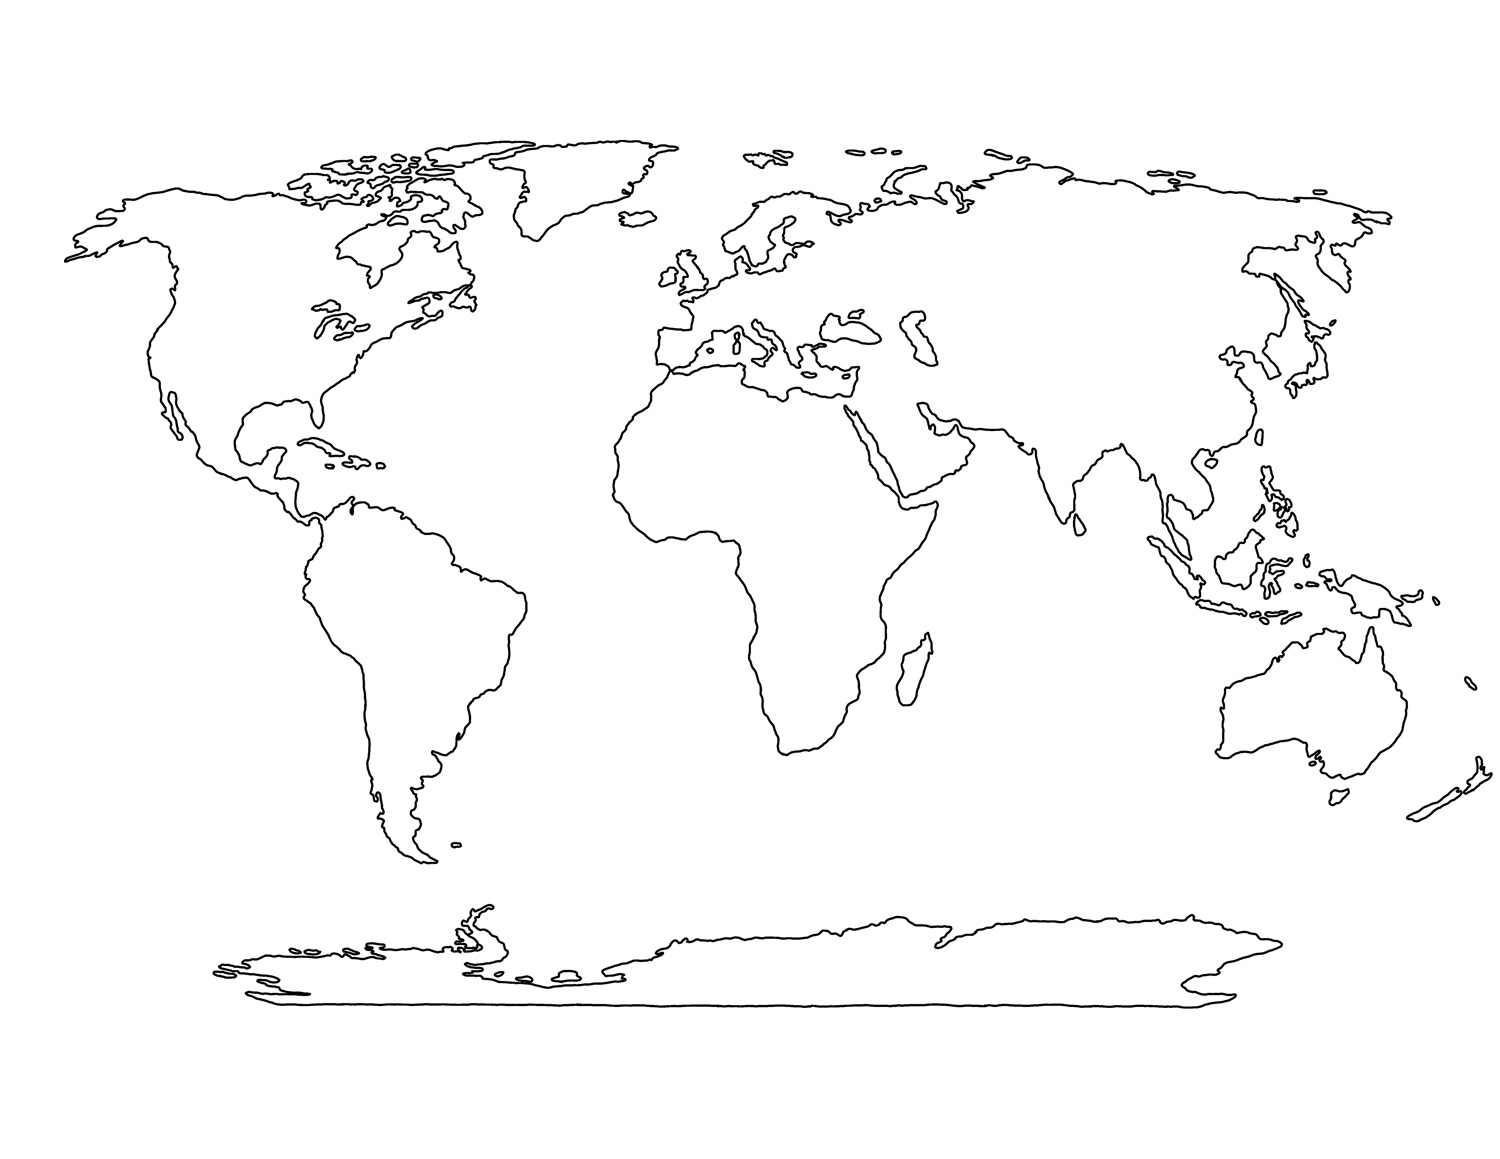 Printable blank world map template for students and kids printable blank world map template gumiabroncs